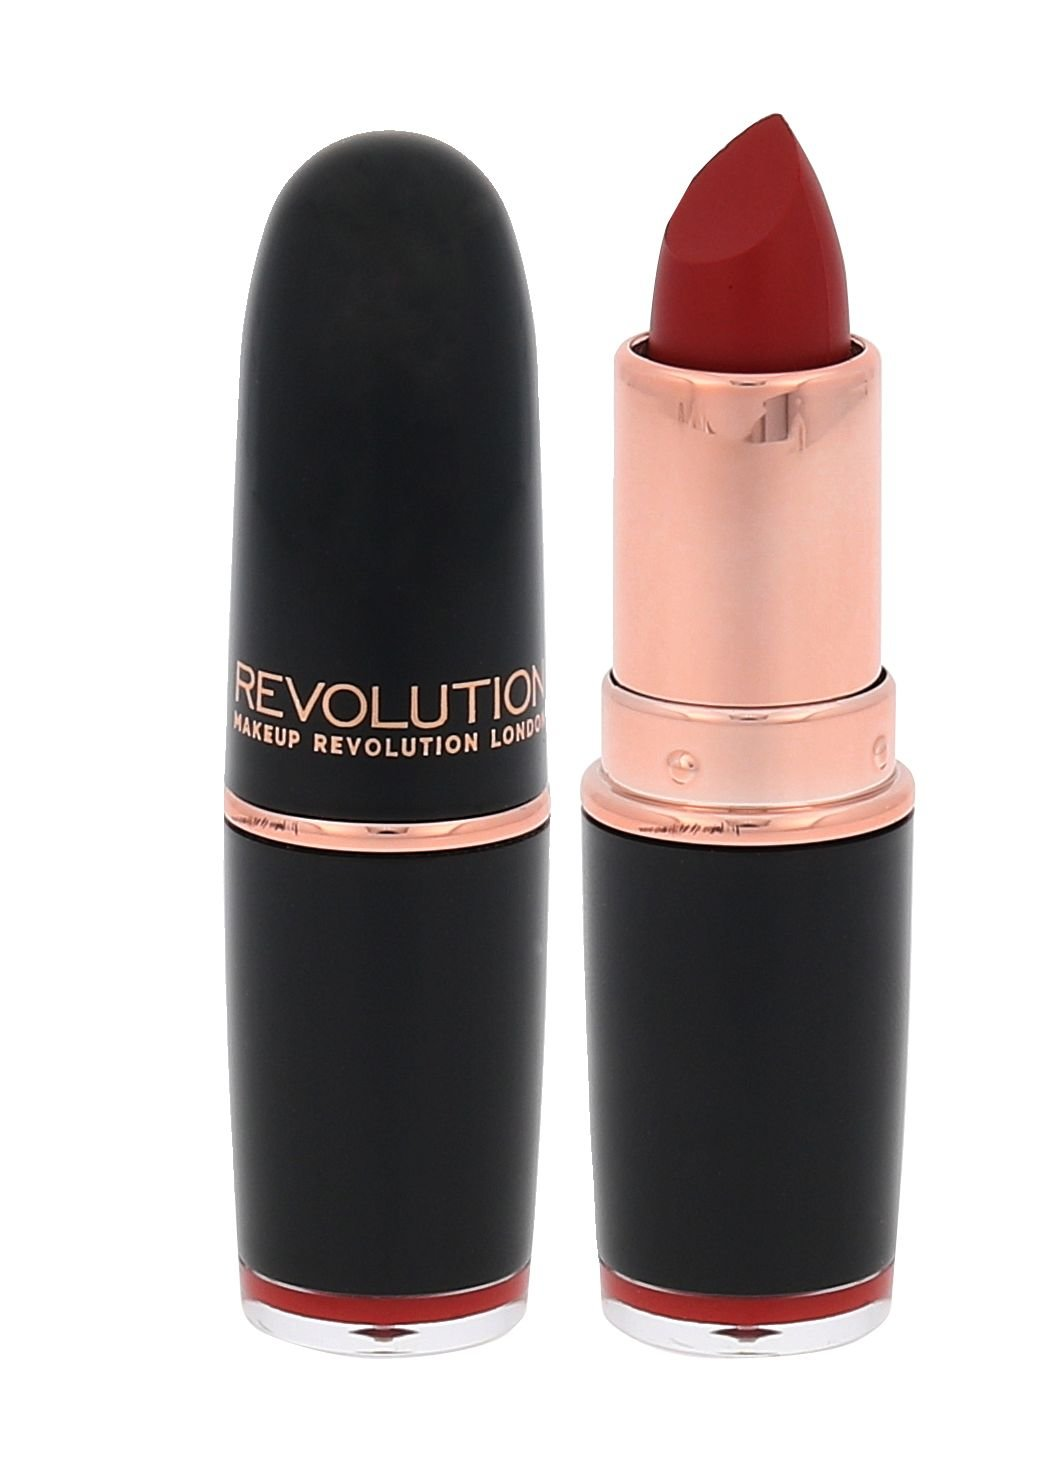 Makeup Revolution London Iconic Pro Cosmetic 3,2ml Propoganda